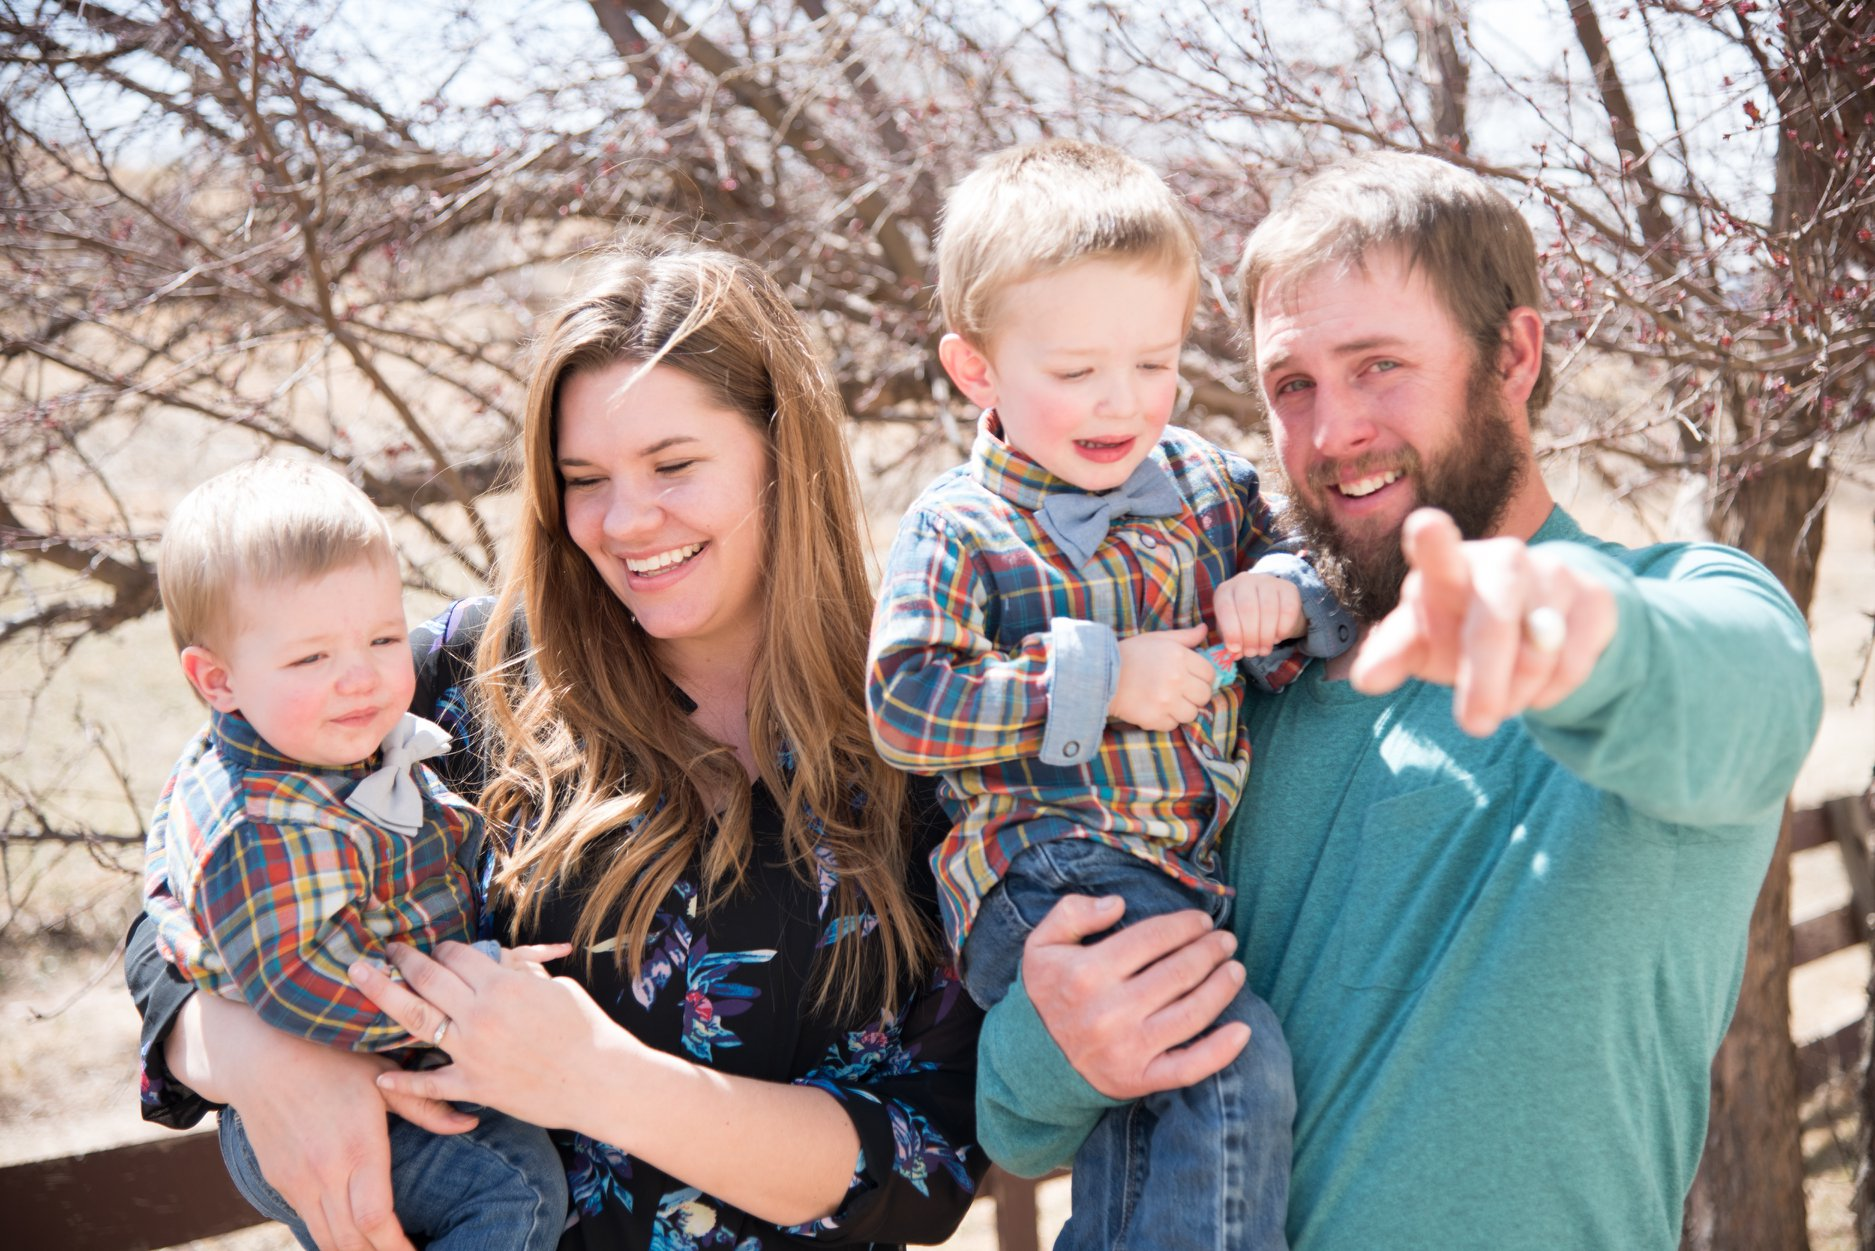 Raising My Young Family Has Me Completely Exhausted www.herviewfromhome.com